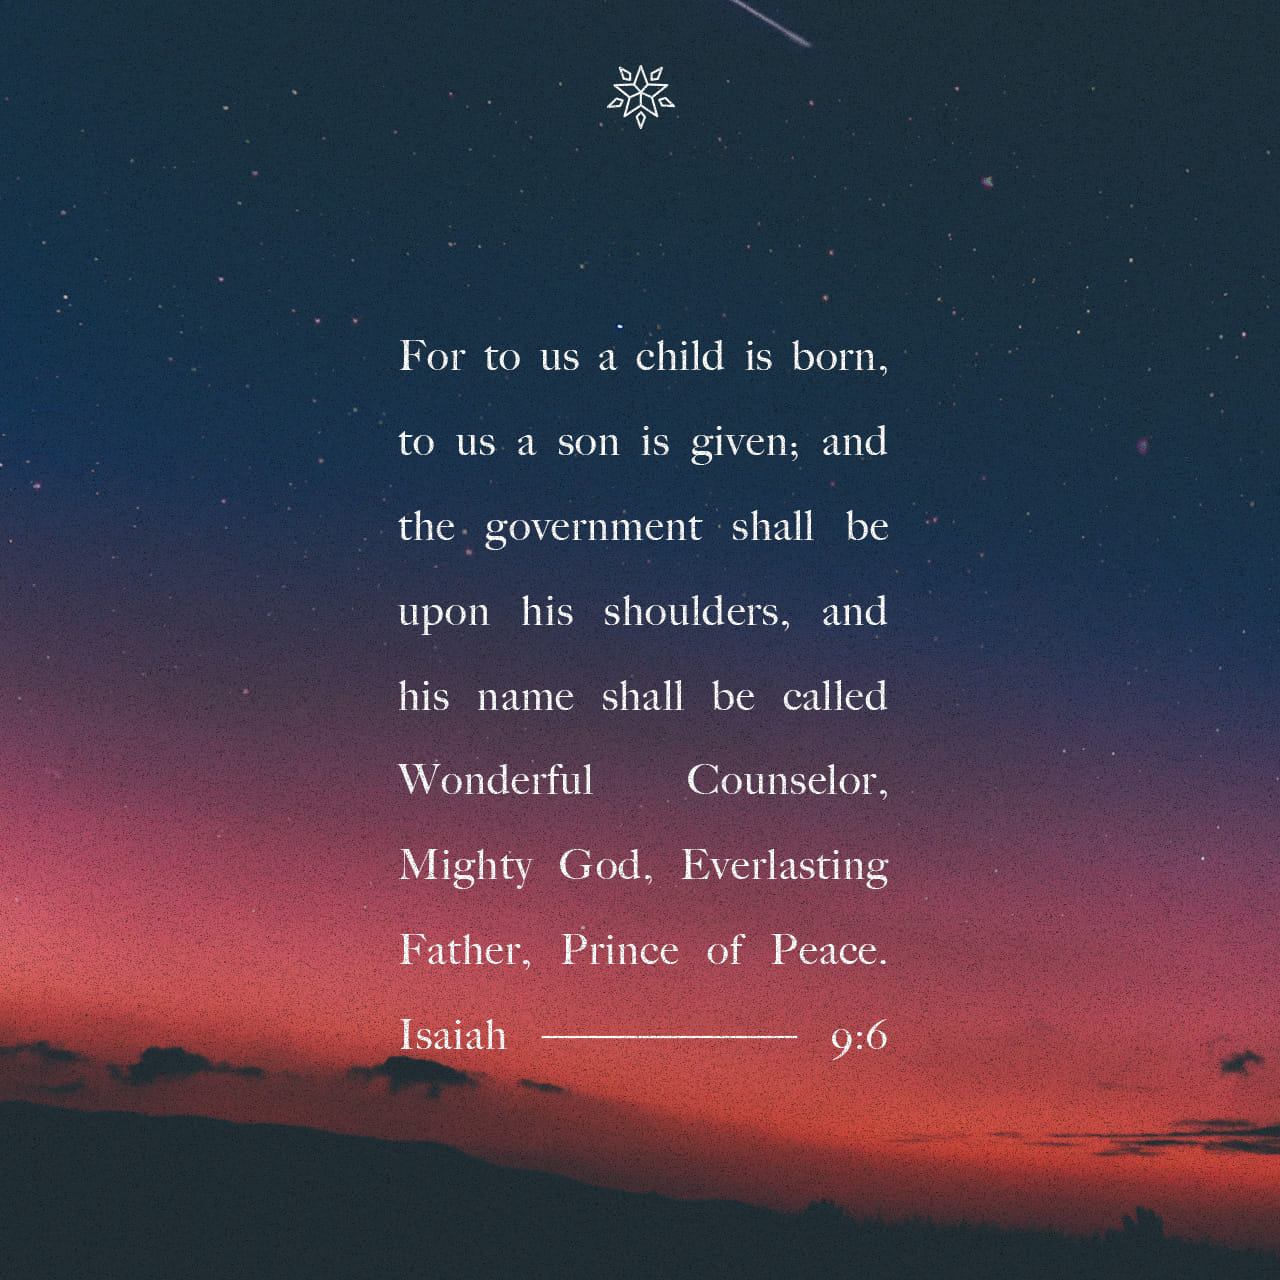 For to us a child is born, to us a son is given, and the government will be on his shoulders. And he will be called Wonderful Counselor, Mighty God, Everlasting Father, Prince of Peace. - Isaiah 9:6 - Verse Image